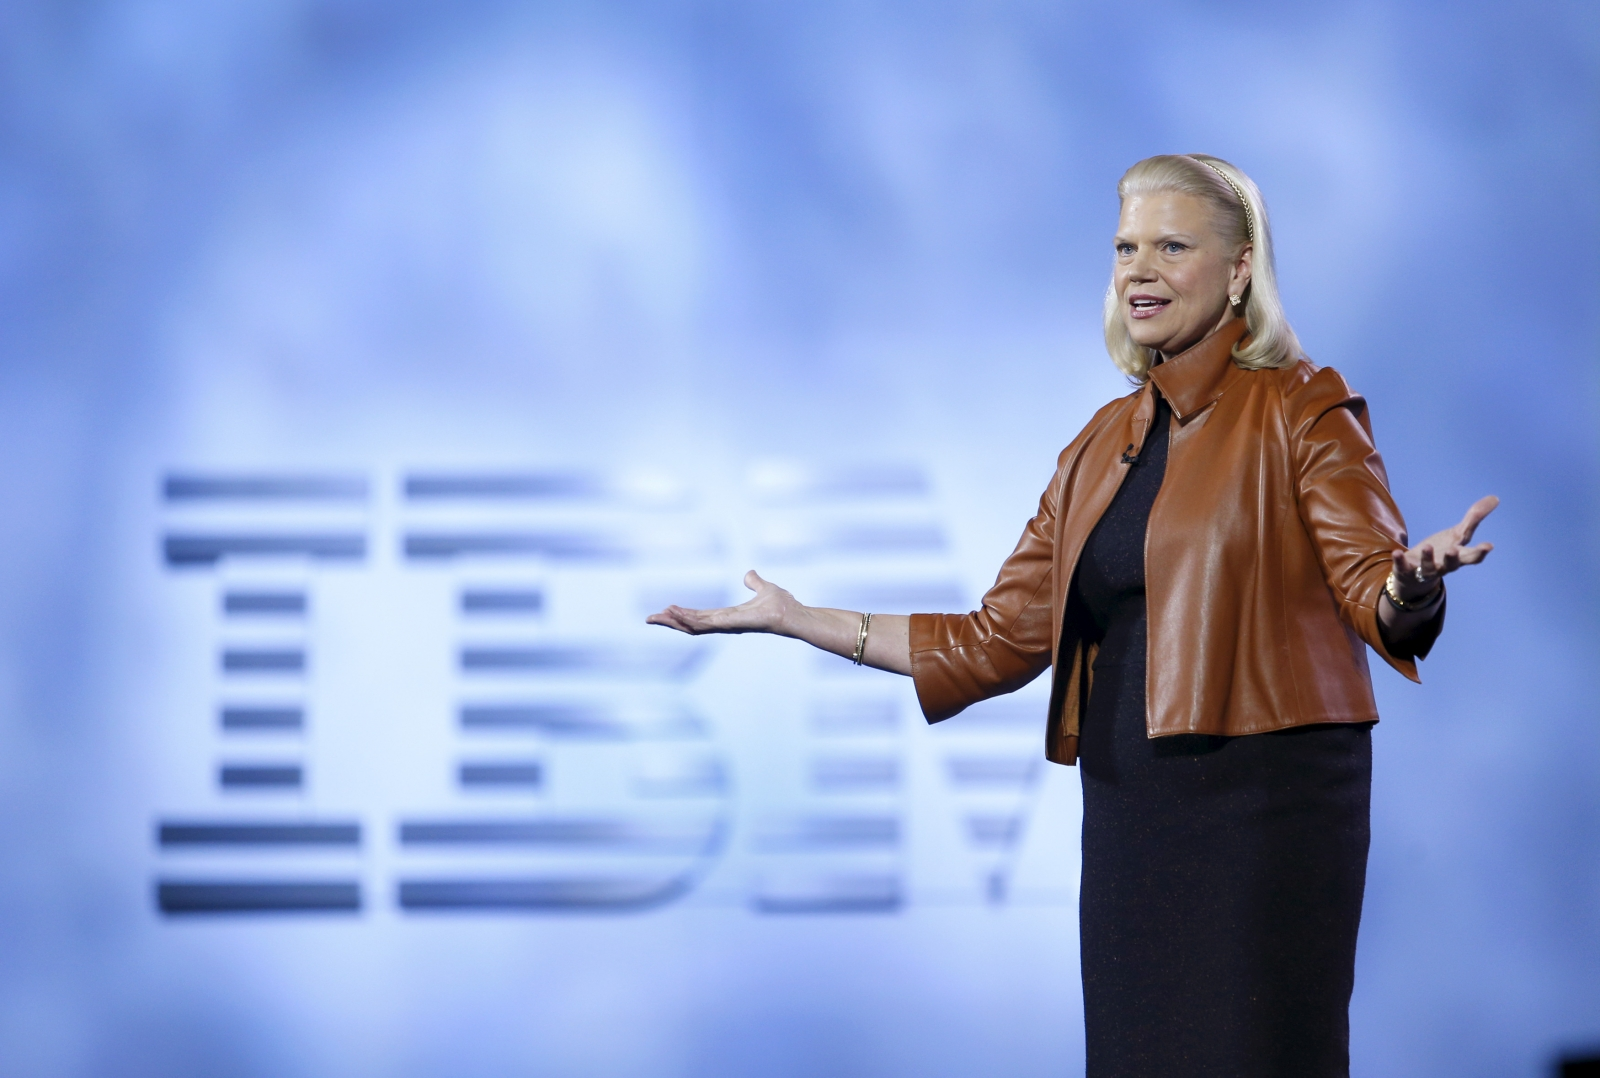 IBM CEO lays out plans to hire 25,000 people and invest $1bn in employee training and development over the next four years